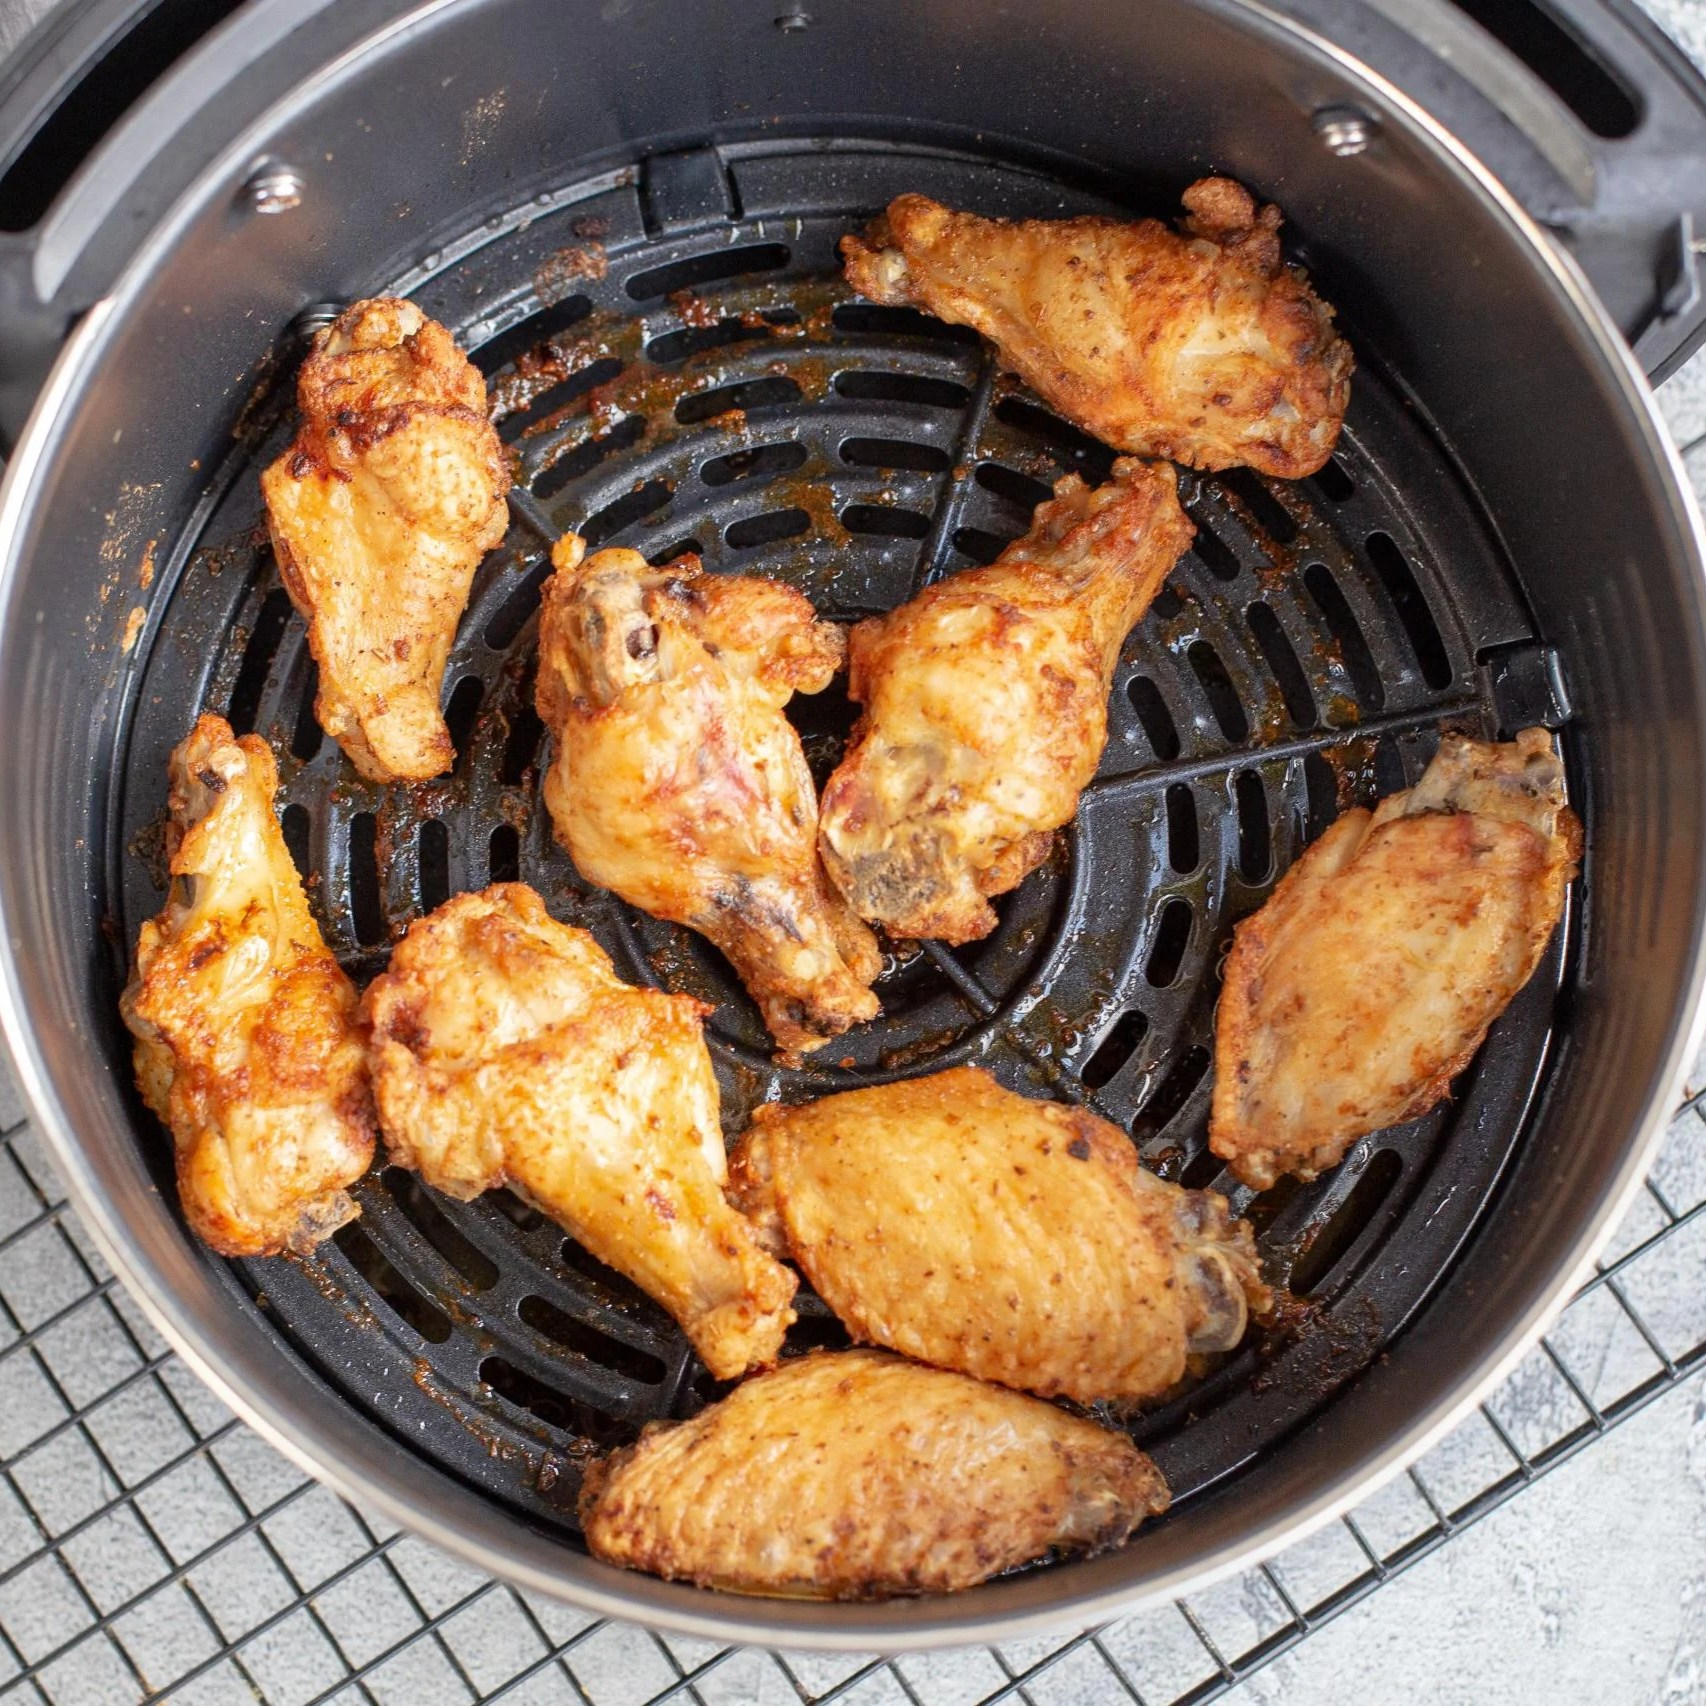 Chicken Wings in an air fryer that is on top of a baking rack